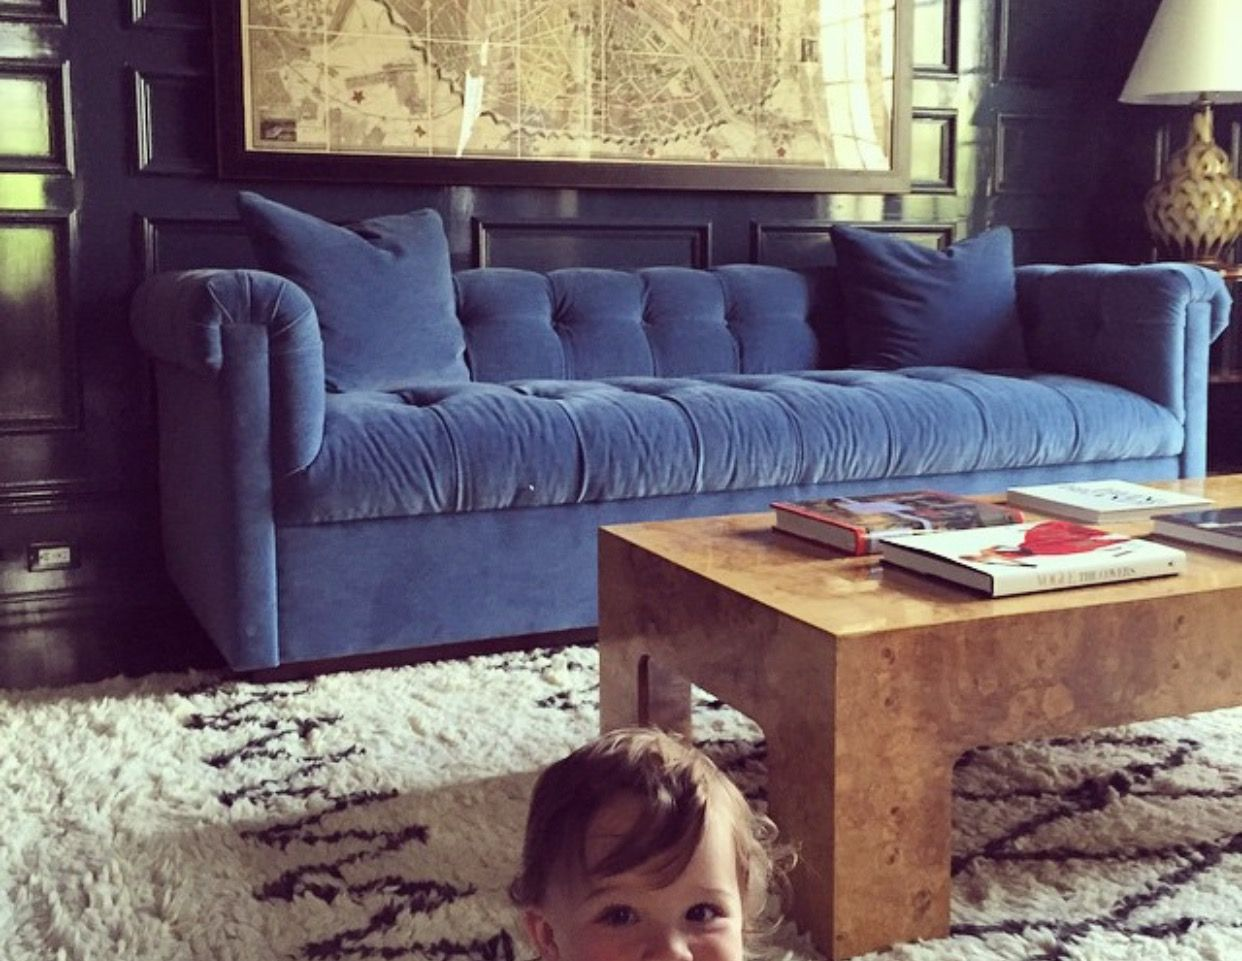 Hickory Chair Blue Velvet Sofa By Anna Burke Interiors With A Burl Wood Coffee Table Burled Wood Blue Velvet Sofa Wood Sofa